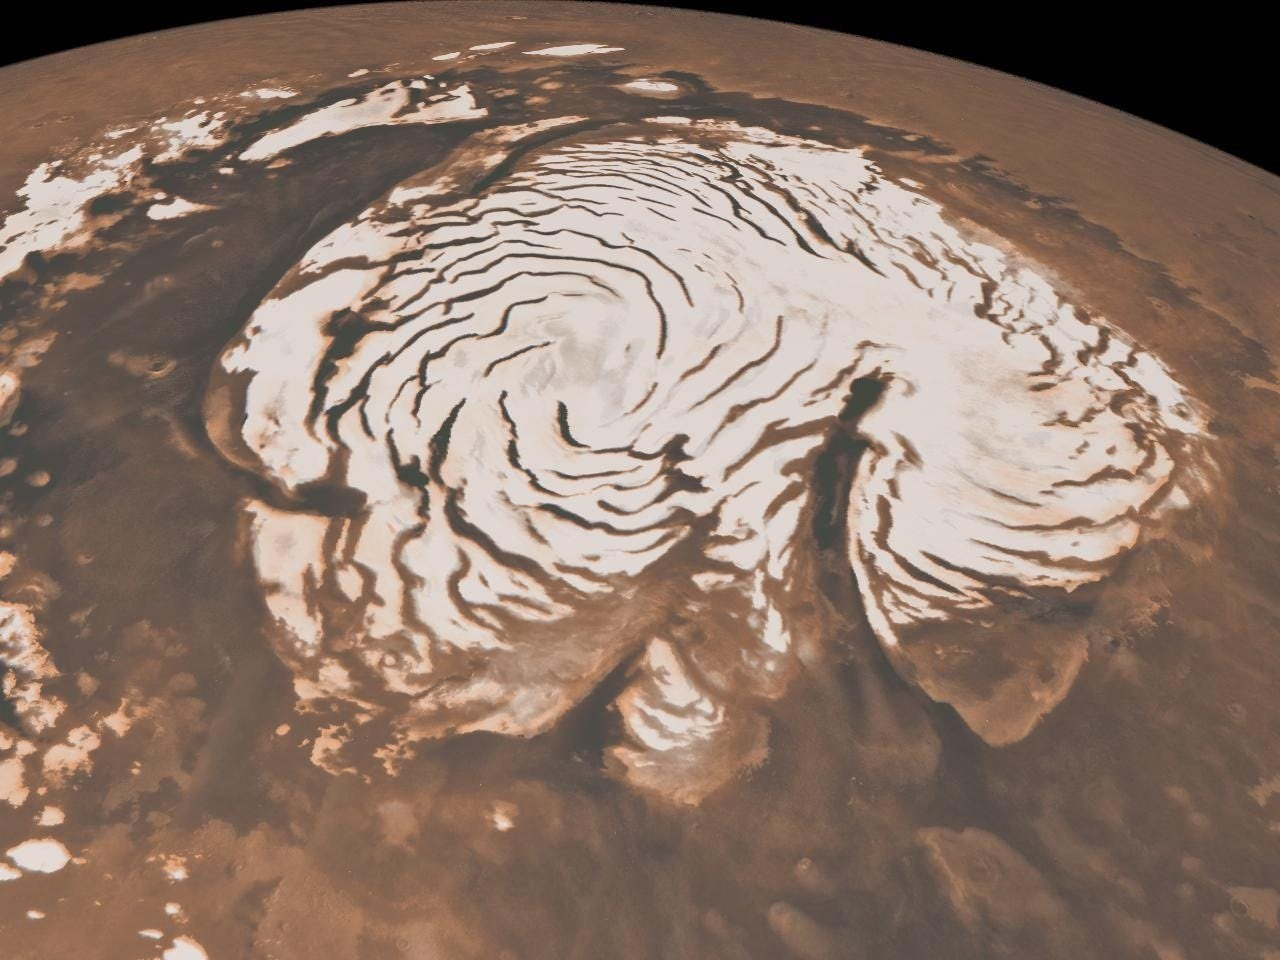 Scientists detected a set of salty lakes on Mars, hidden below south pole glaciers - Business Insider South Africa